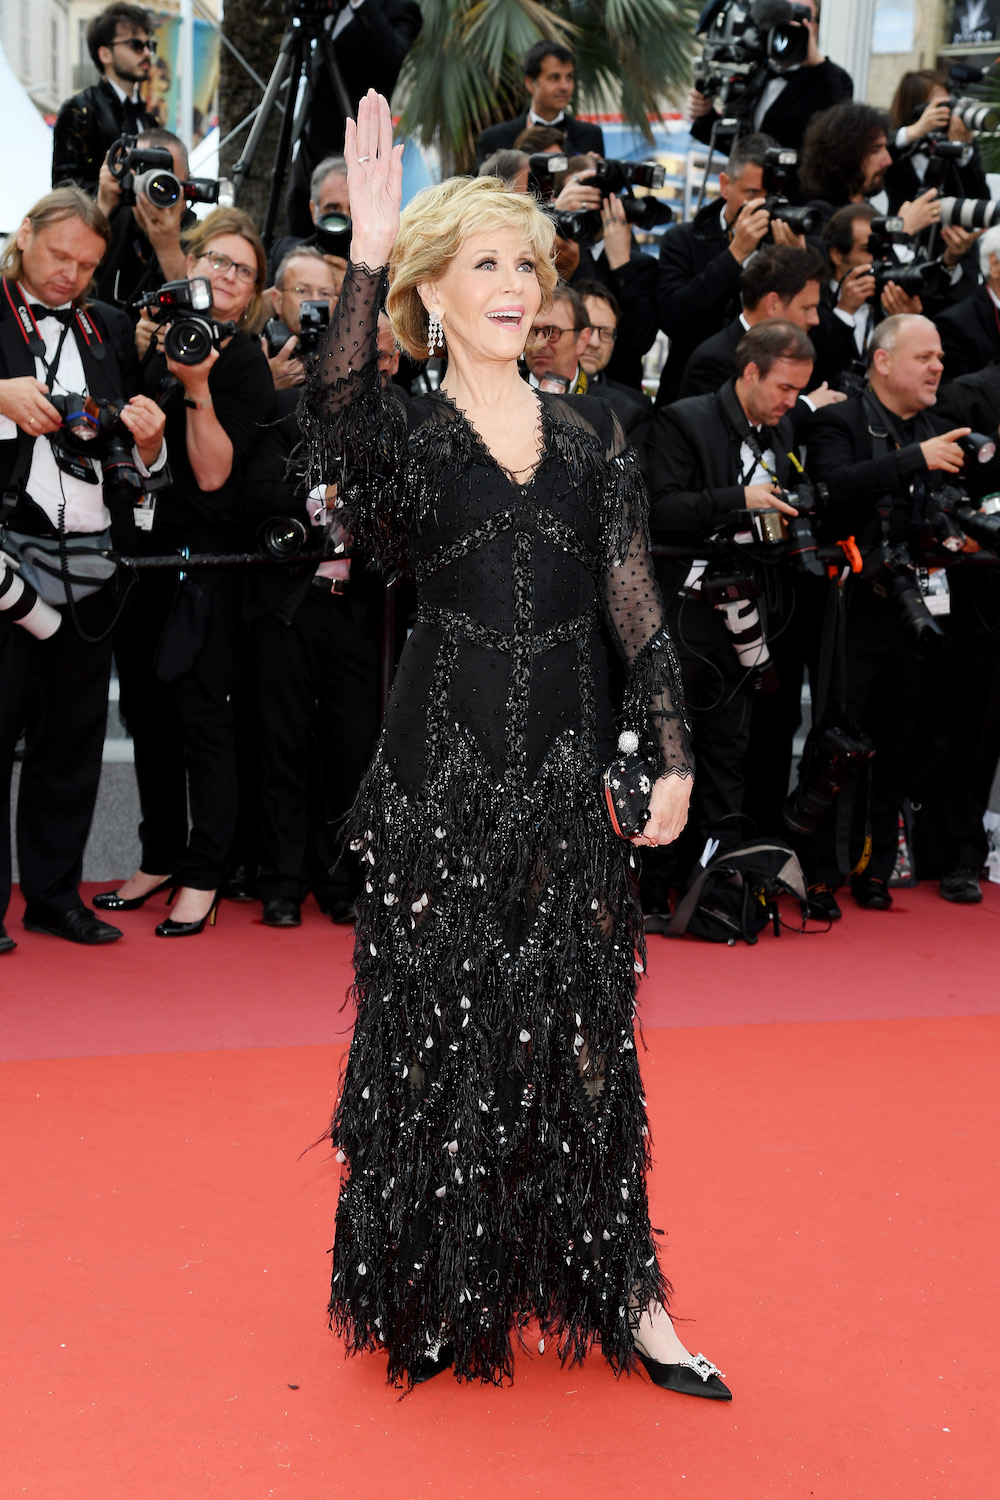 One of the Best-Dressed Celebs at Cannes Is Older Than the Festival Itself